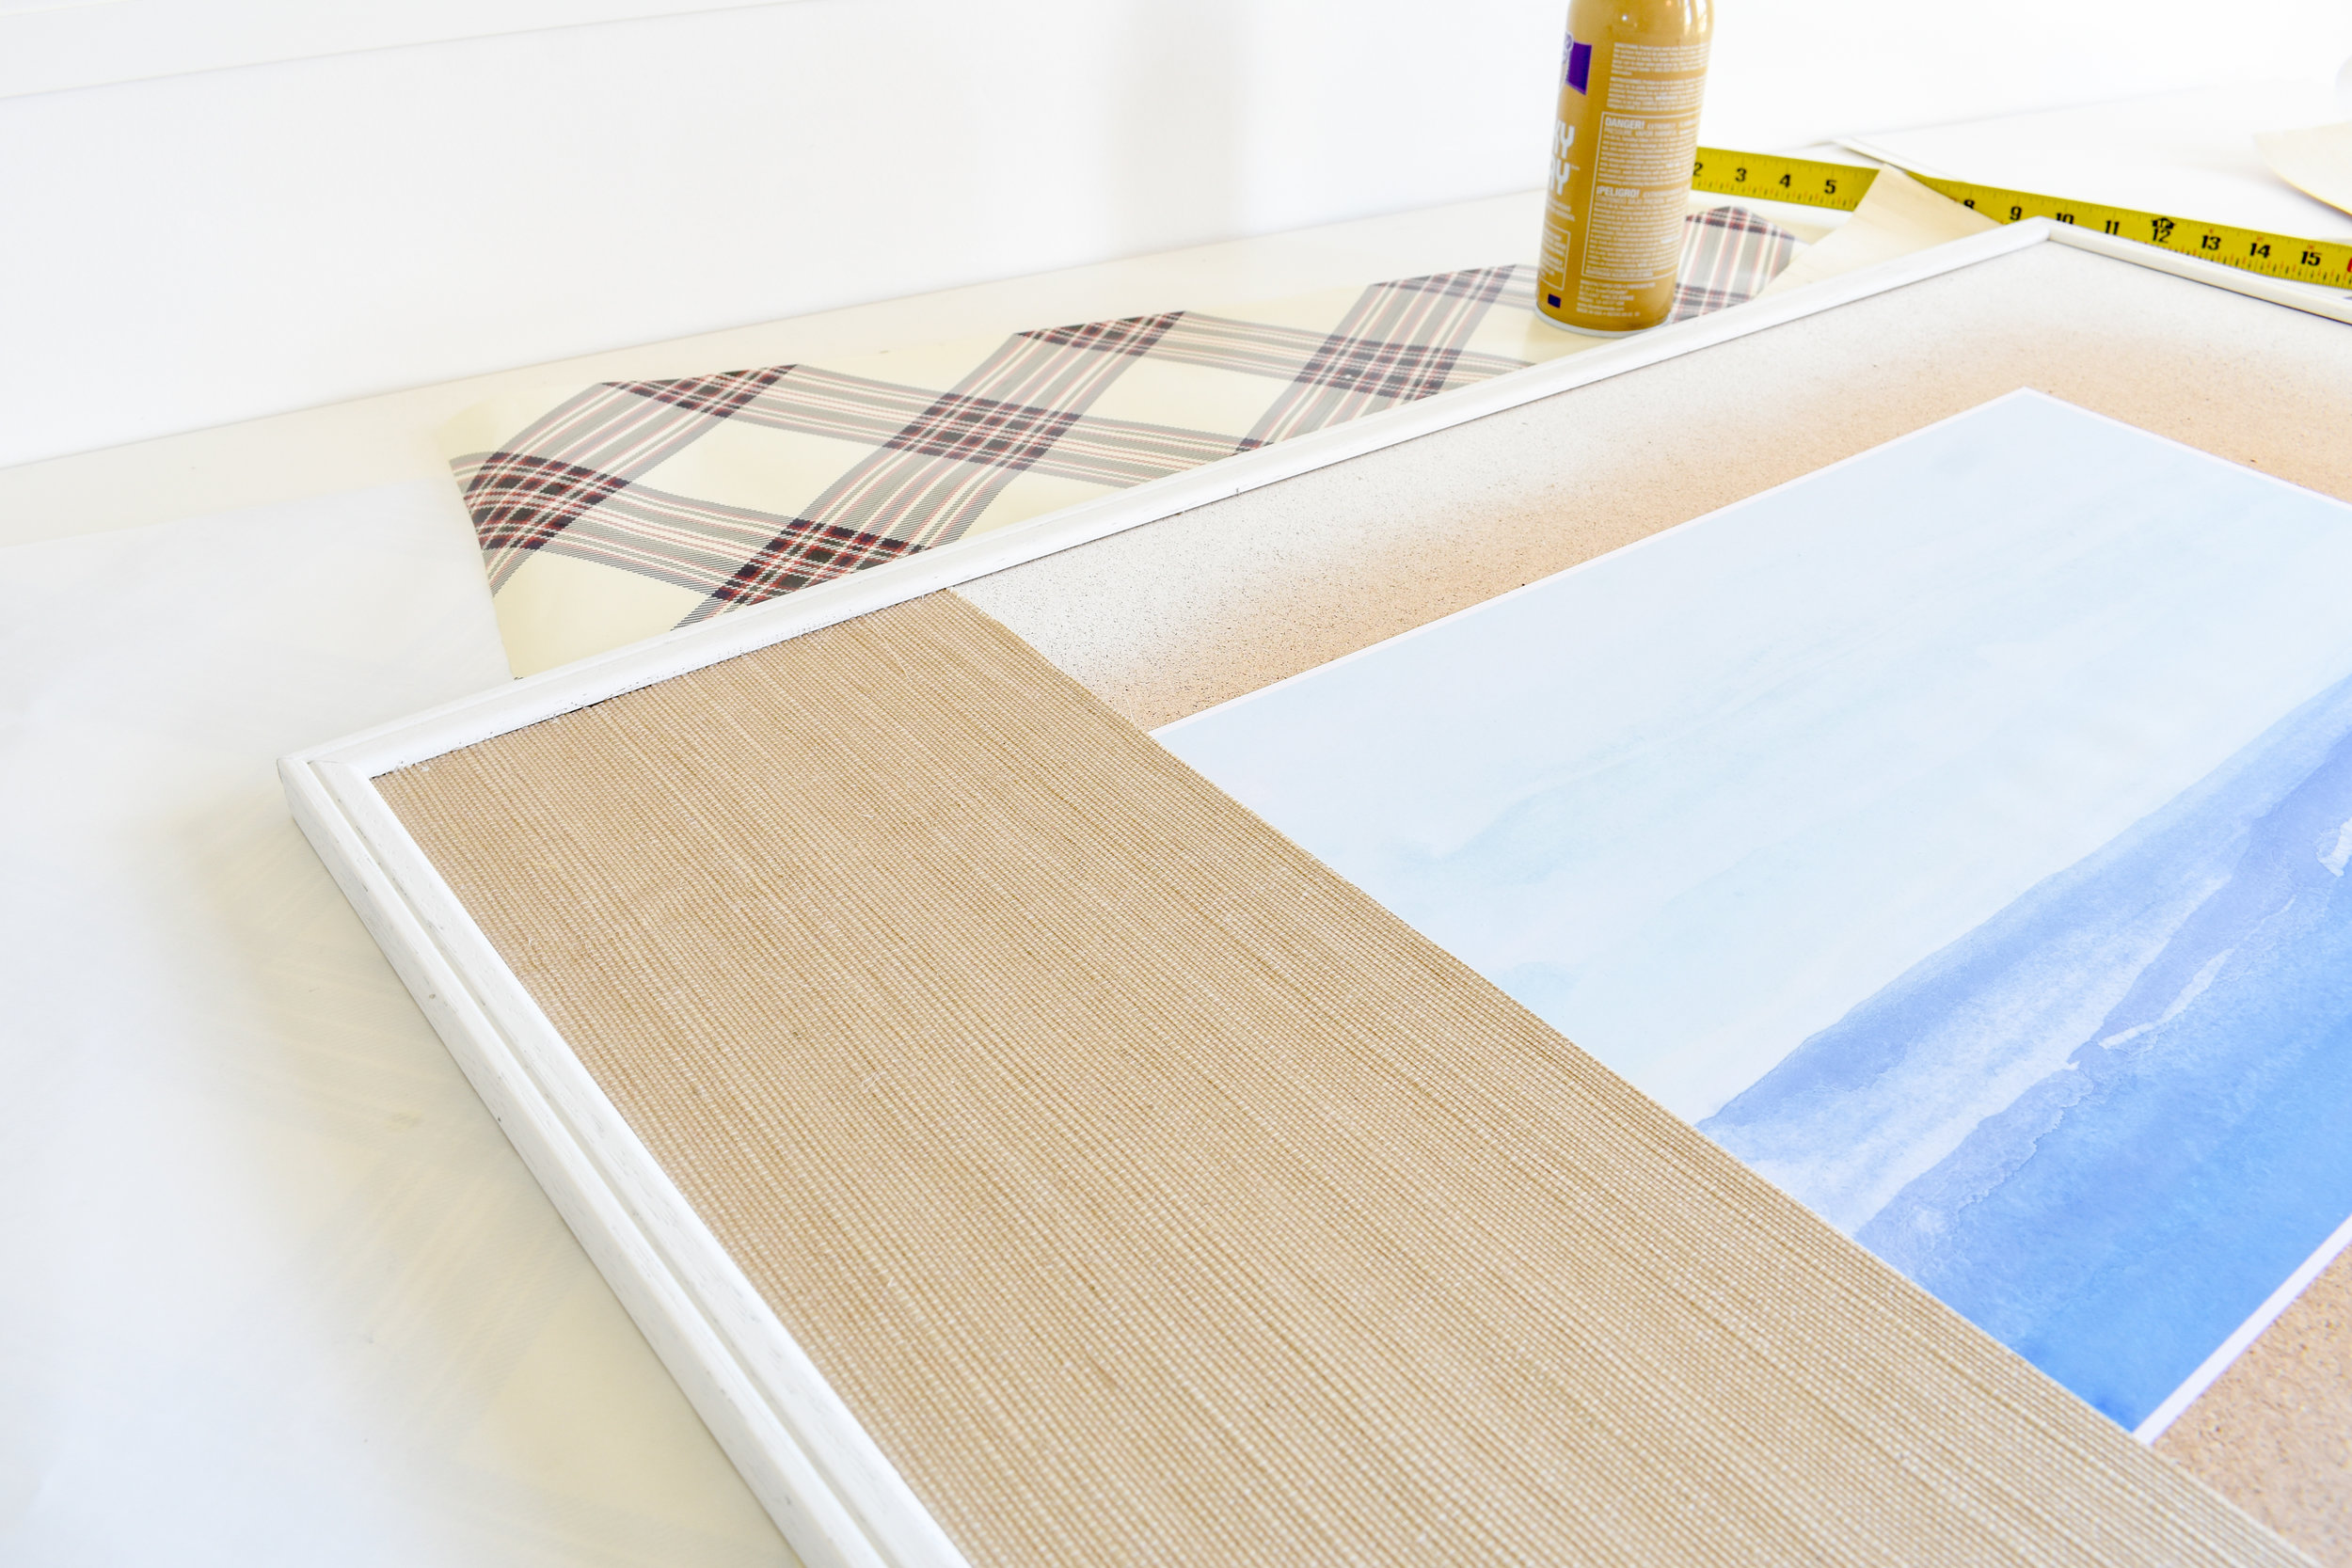 How to turn old wallpaper or wrapping paper scraps into custom matting for artwork. Here, I've used grasscloth wallpaper scraps to create a custom look that would cost hundreds to have made.